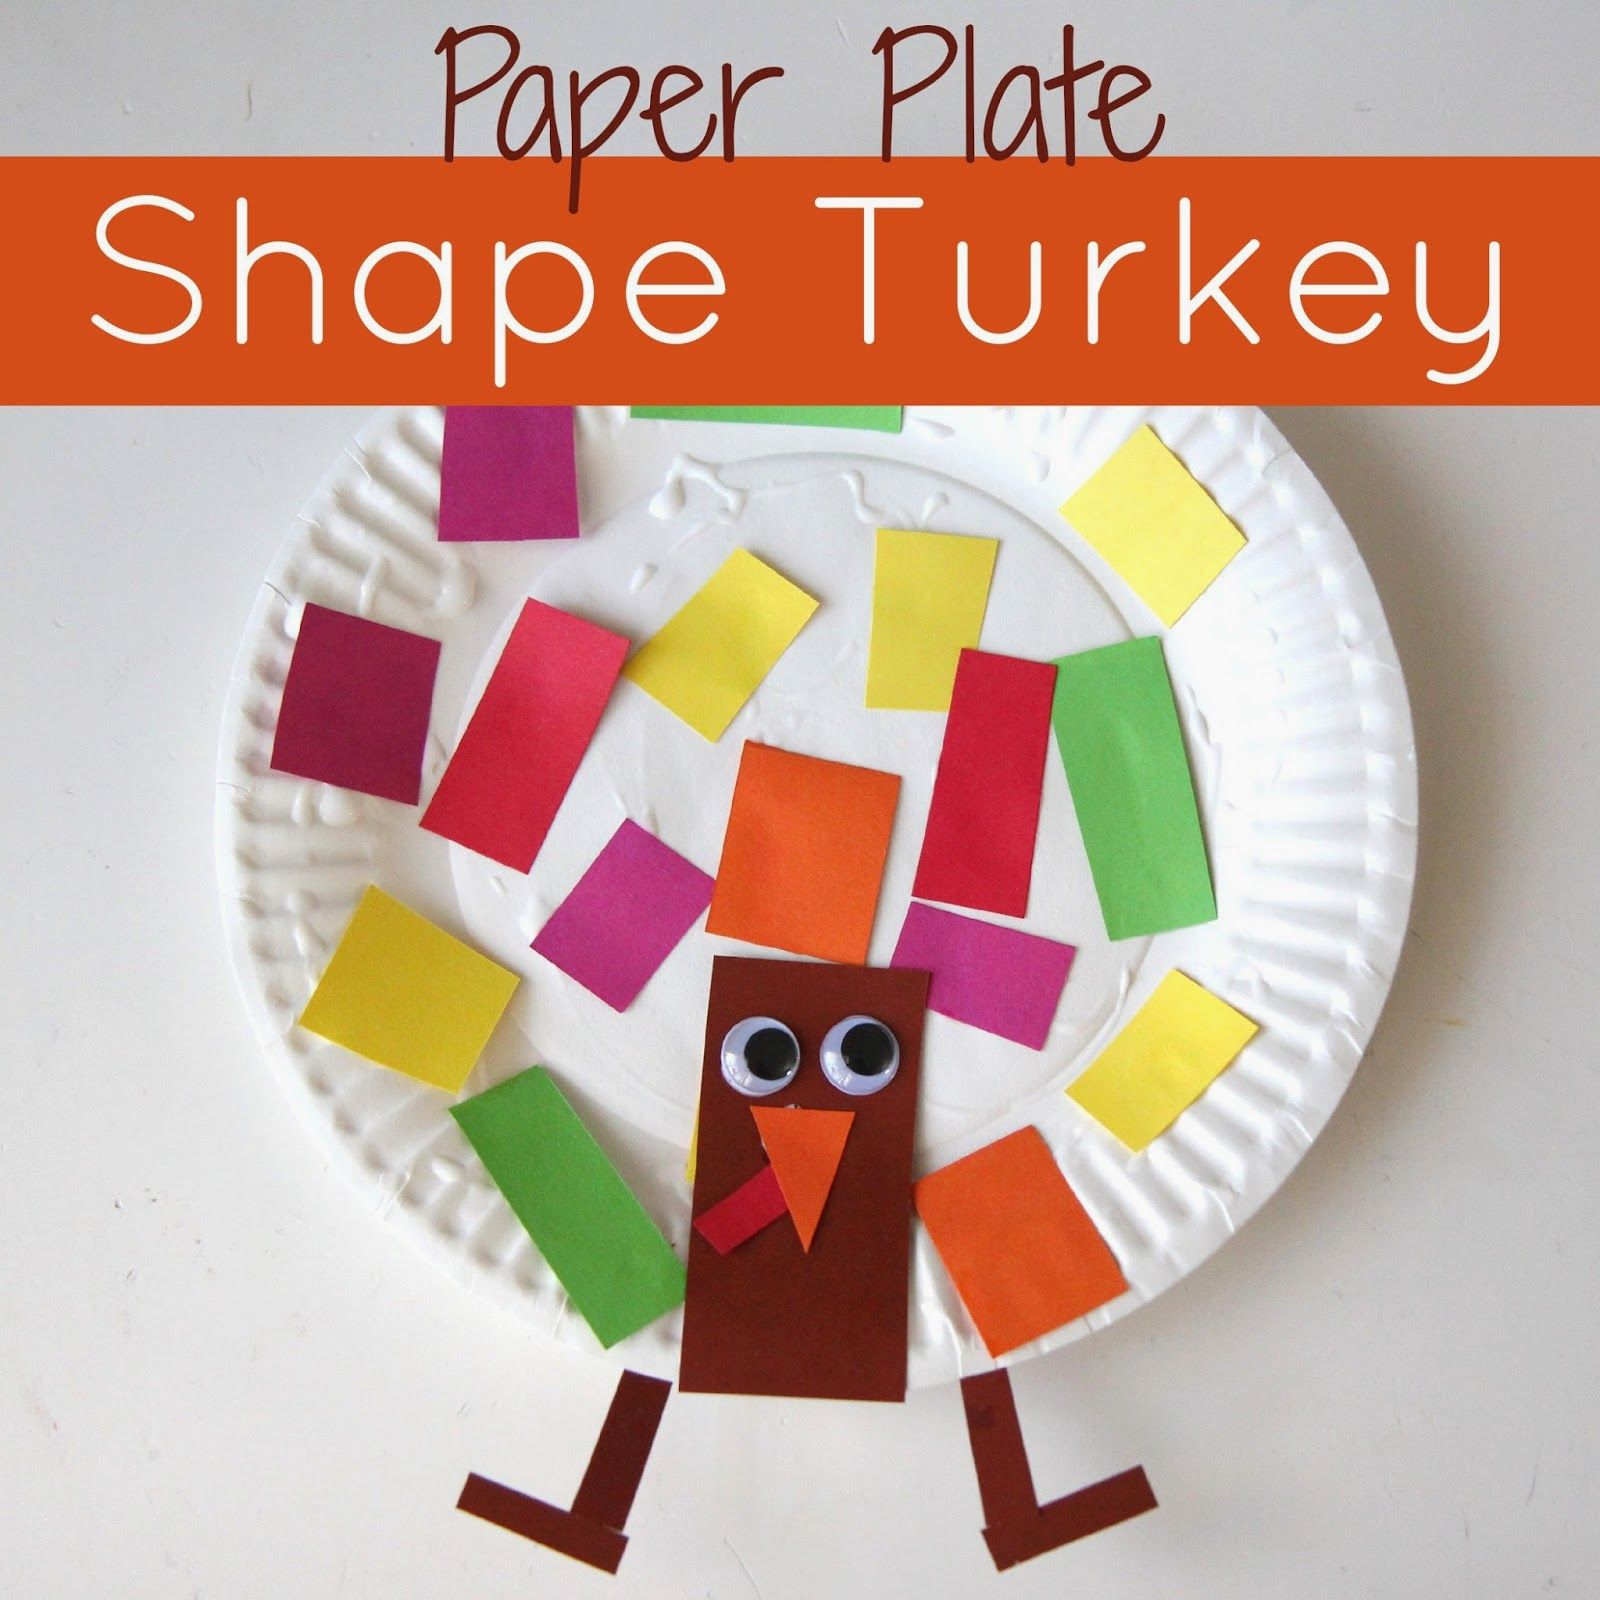 Paper Plate Shape Turkey Craft Toddler Approved